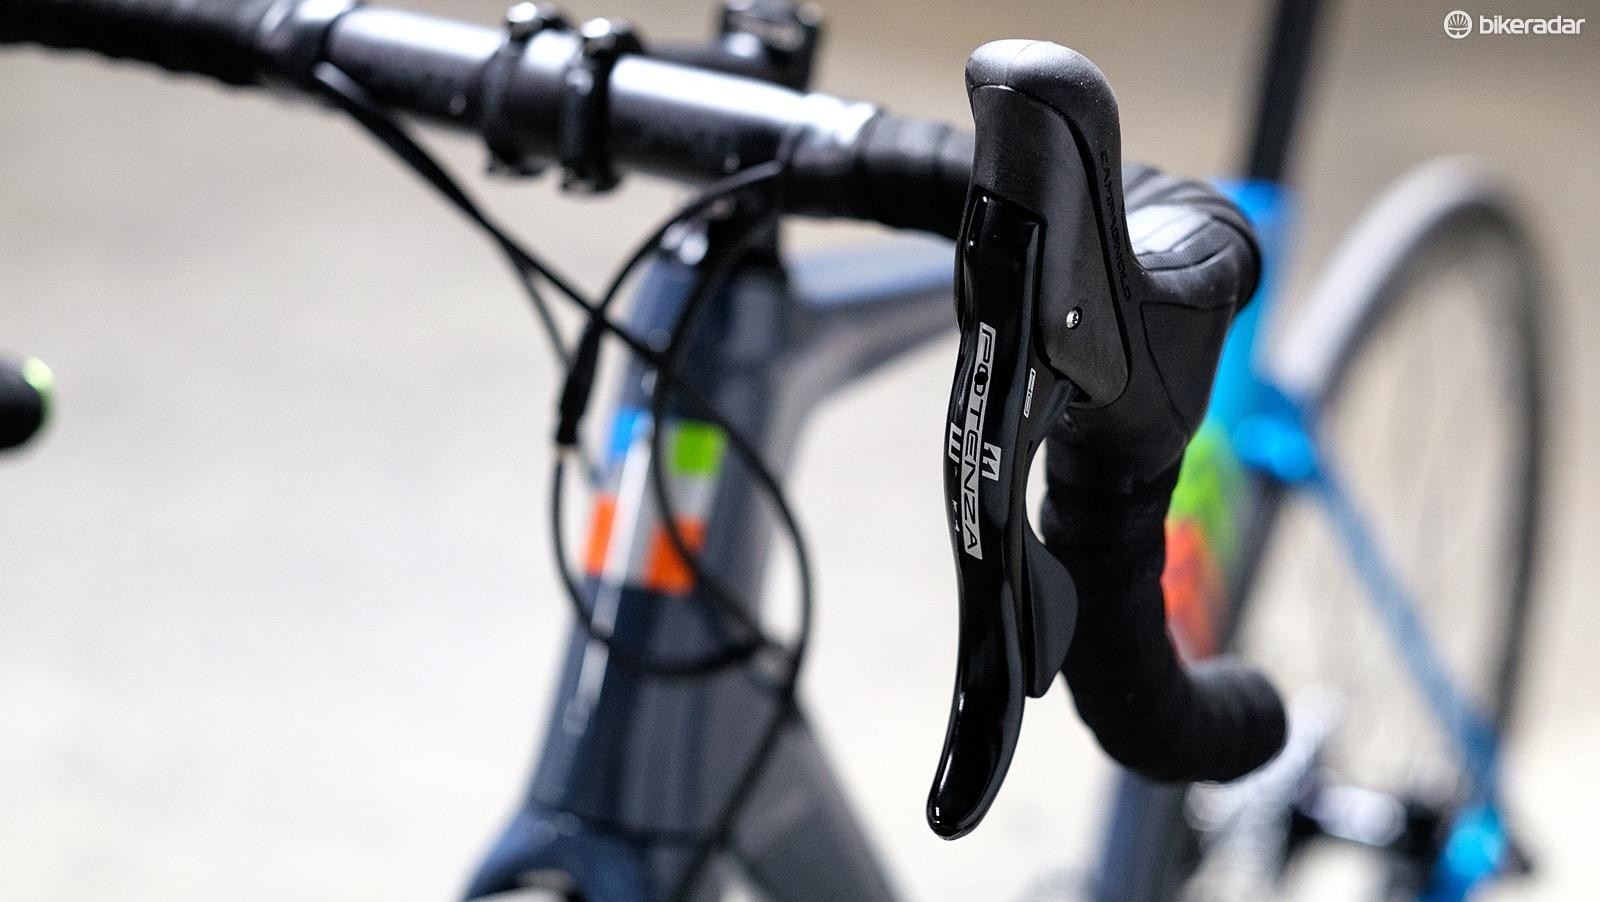 This is one of the first bikes equipped with Campagnolo's hydraulic disc brakes that we've got in for test